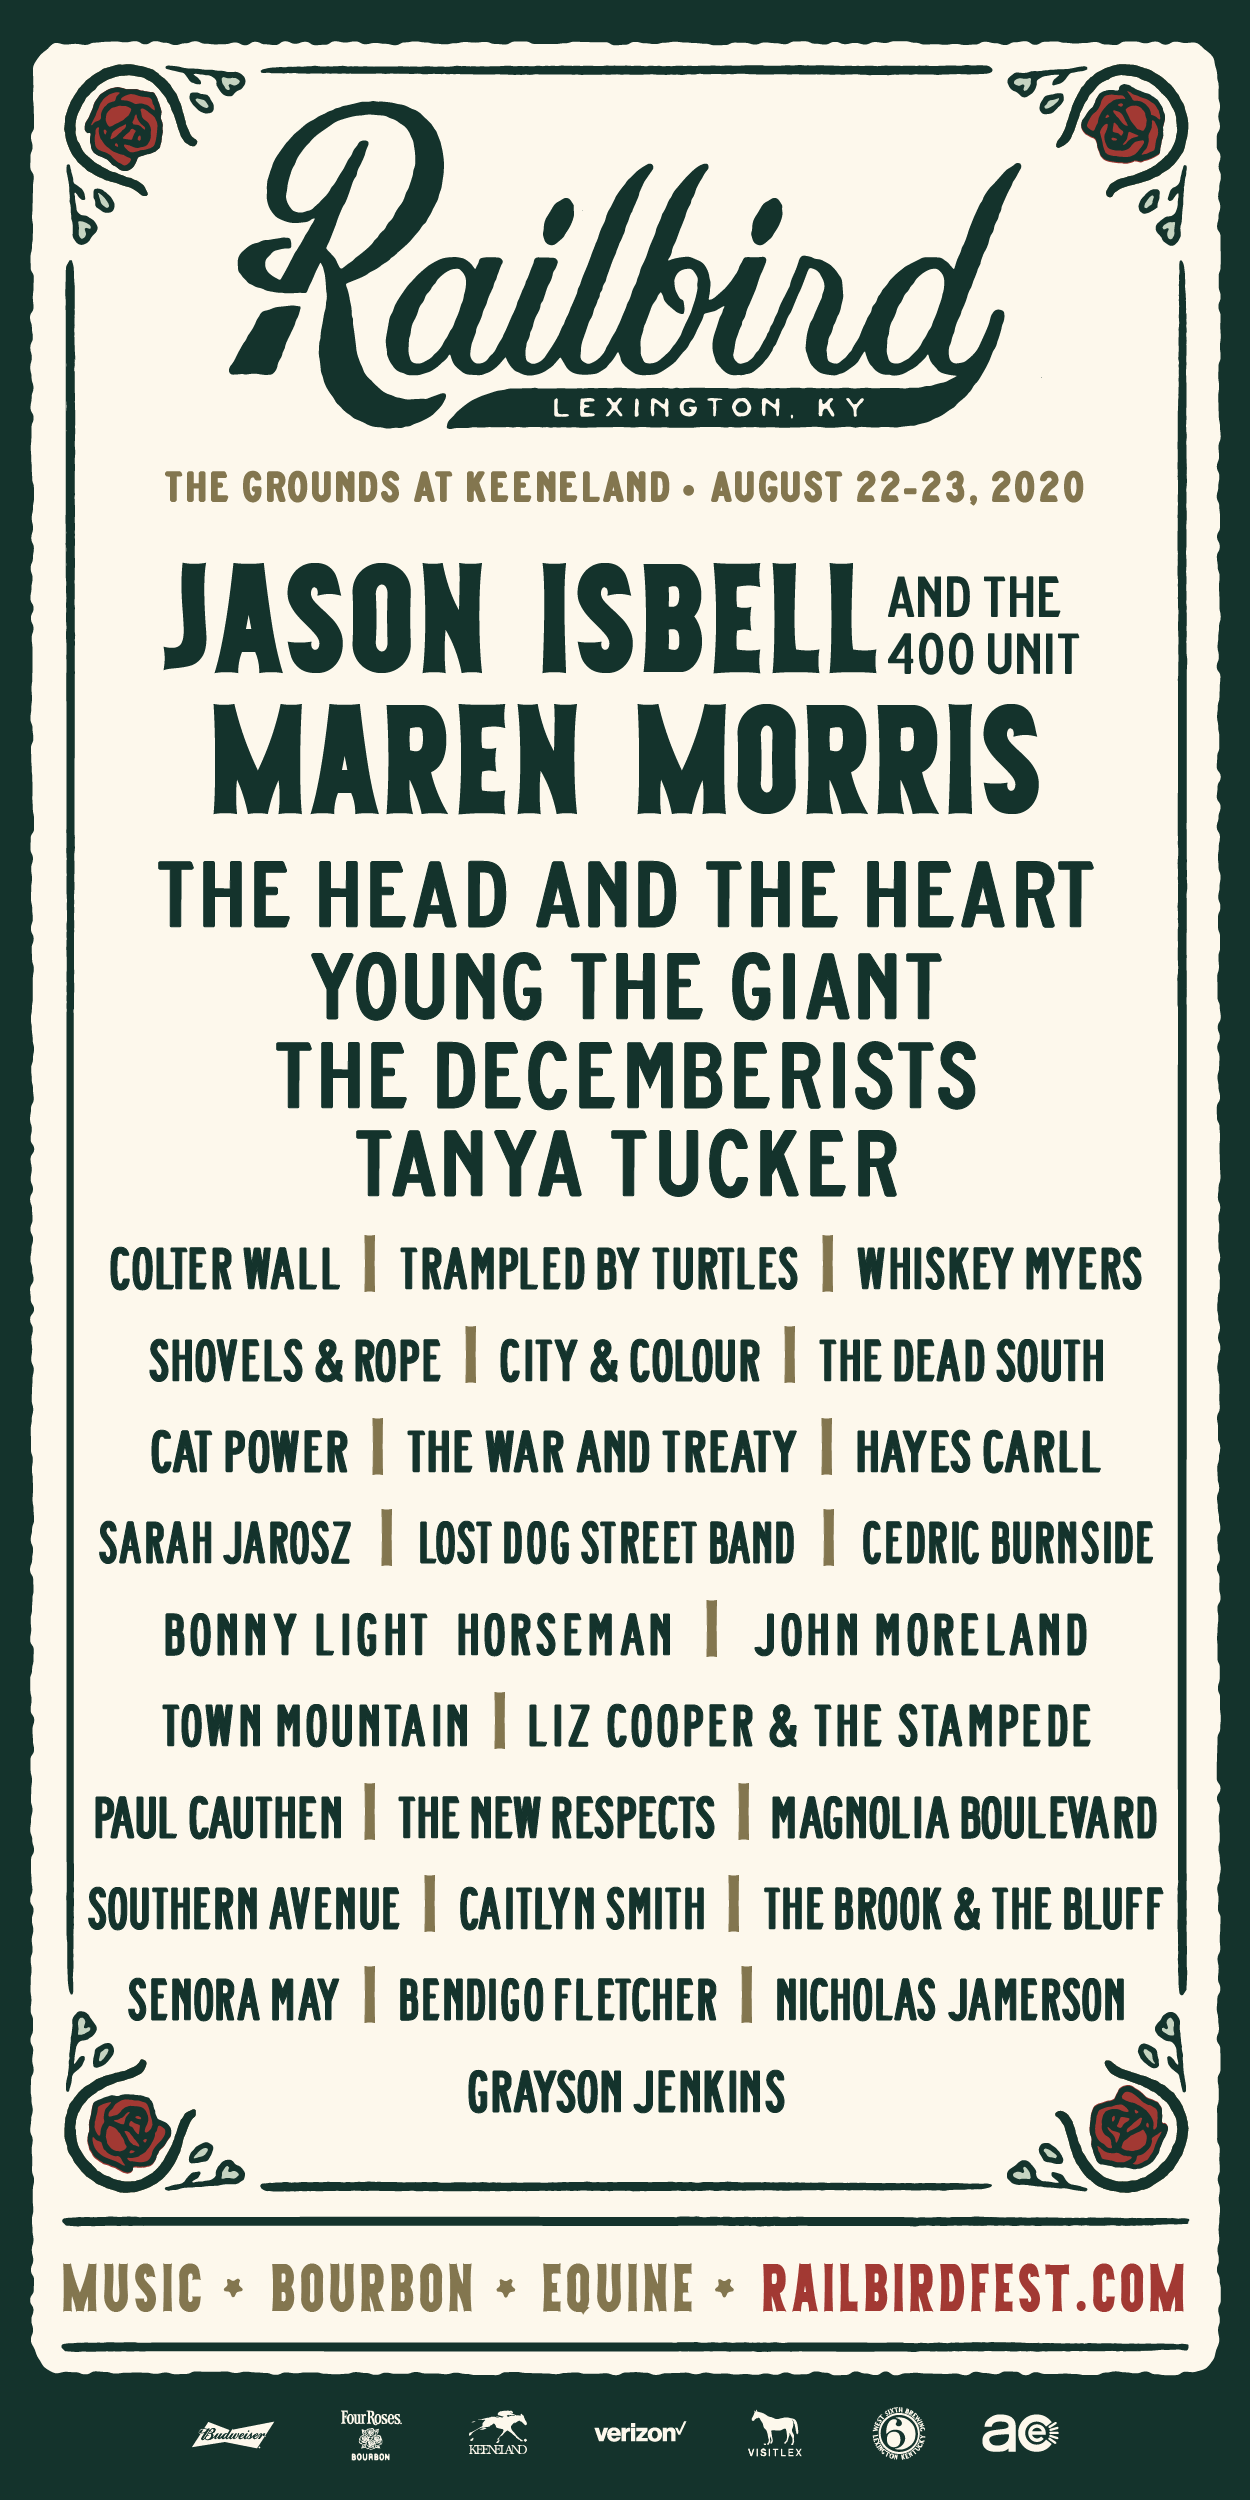 Railbird Festival: Jason Isbell / Maren Morris & more - August 22-23 in Lexington, KY